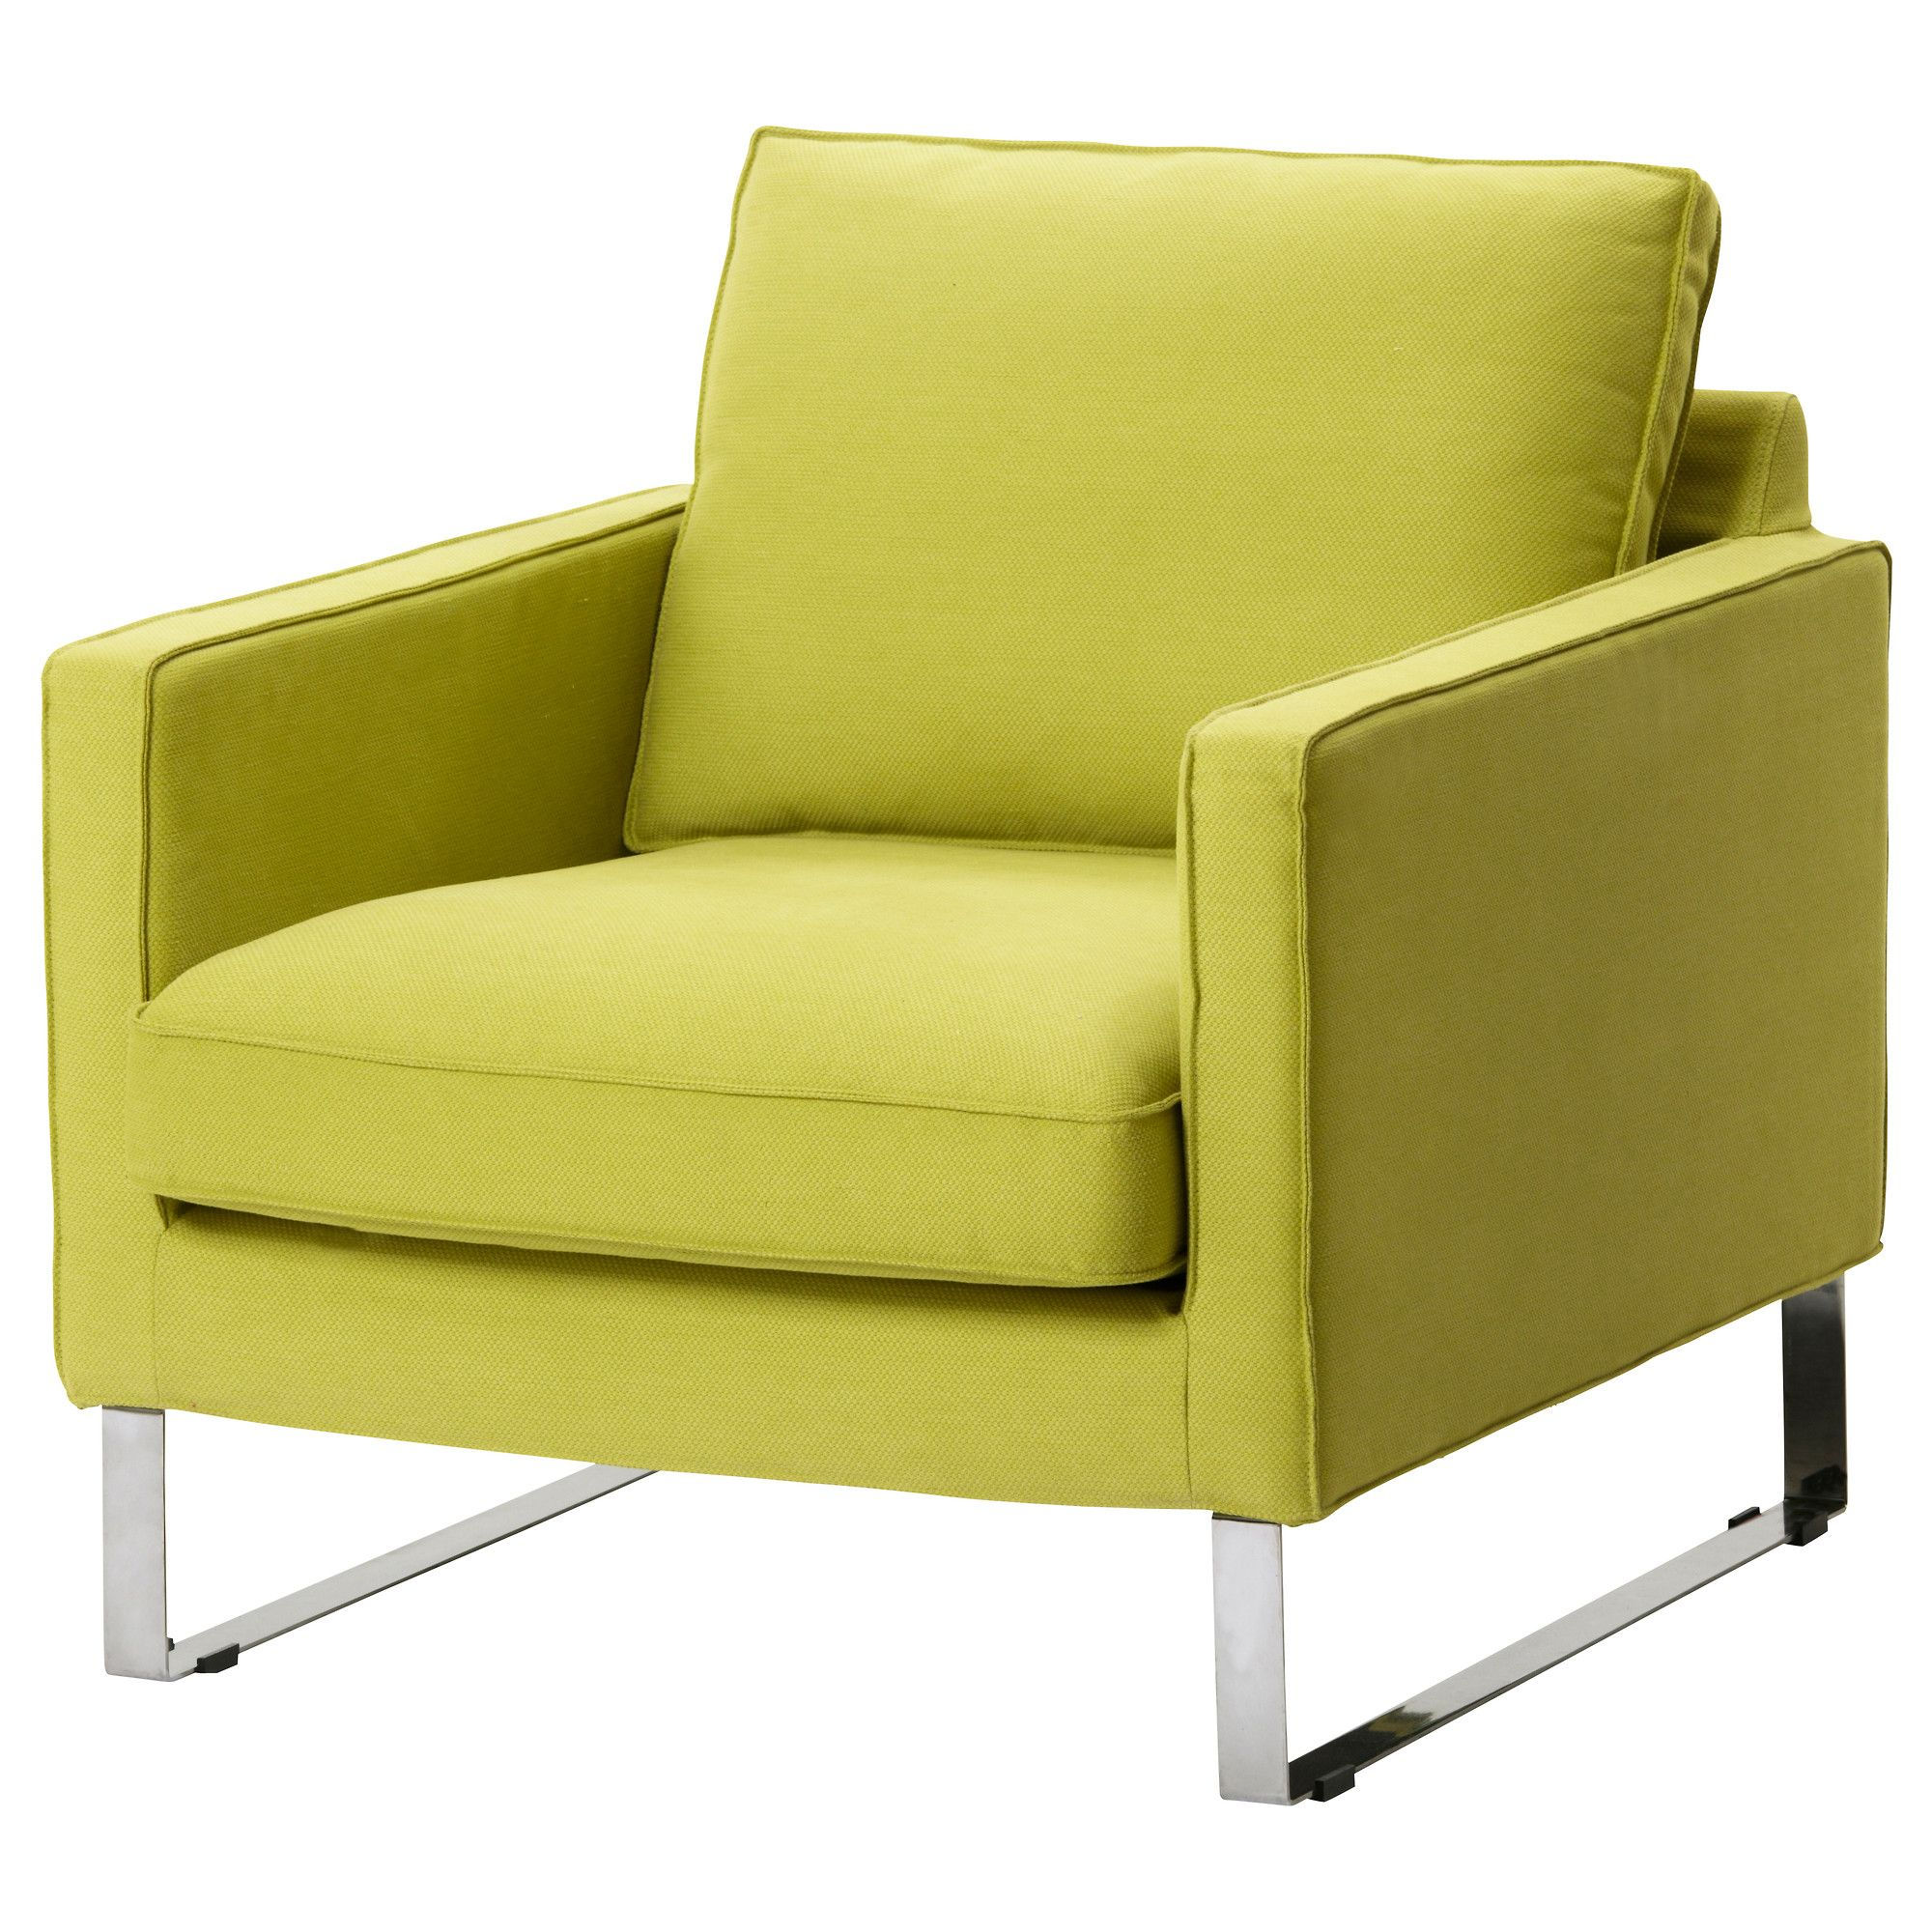 Mellby Chair Dansbo Yellow Green Ikea I Need This